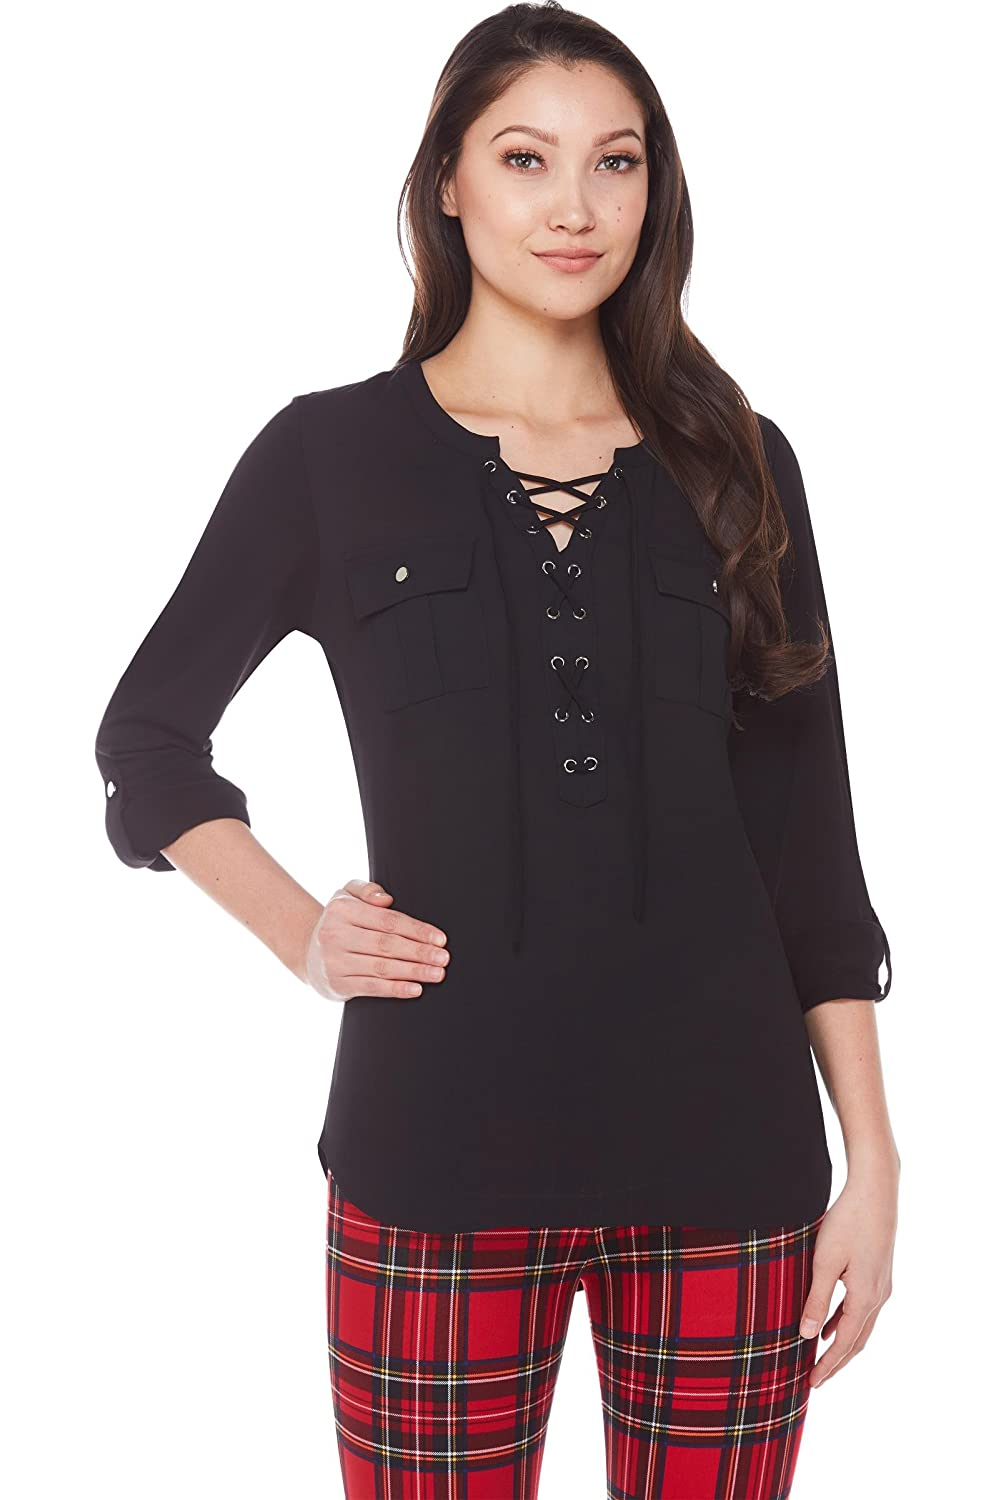 NYGÅRD SLIMS Lace-Up Blouse with Chest Pockets at Amazon Women s Clothing  store  59a92c60e